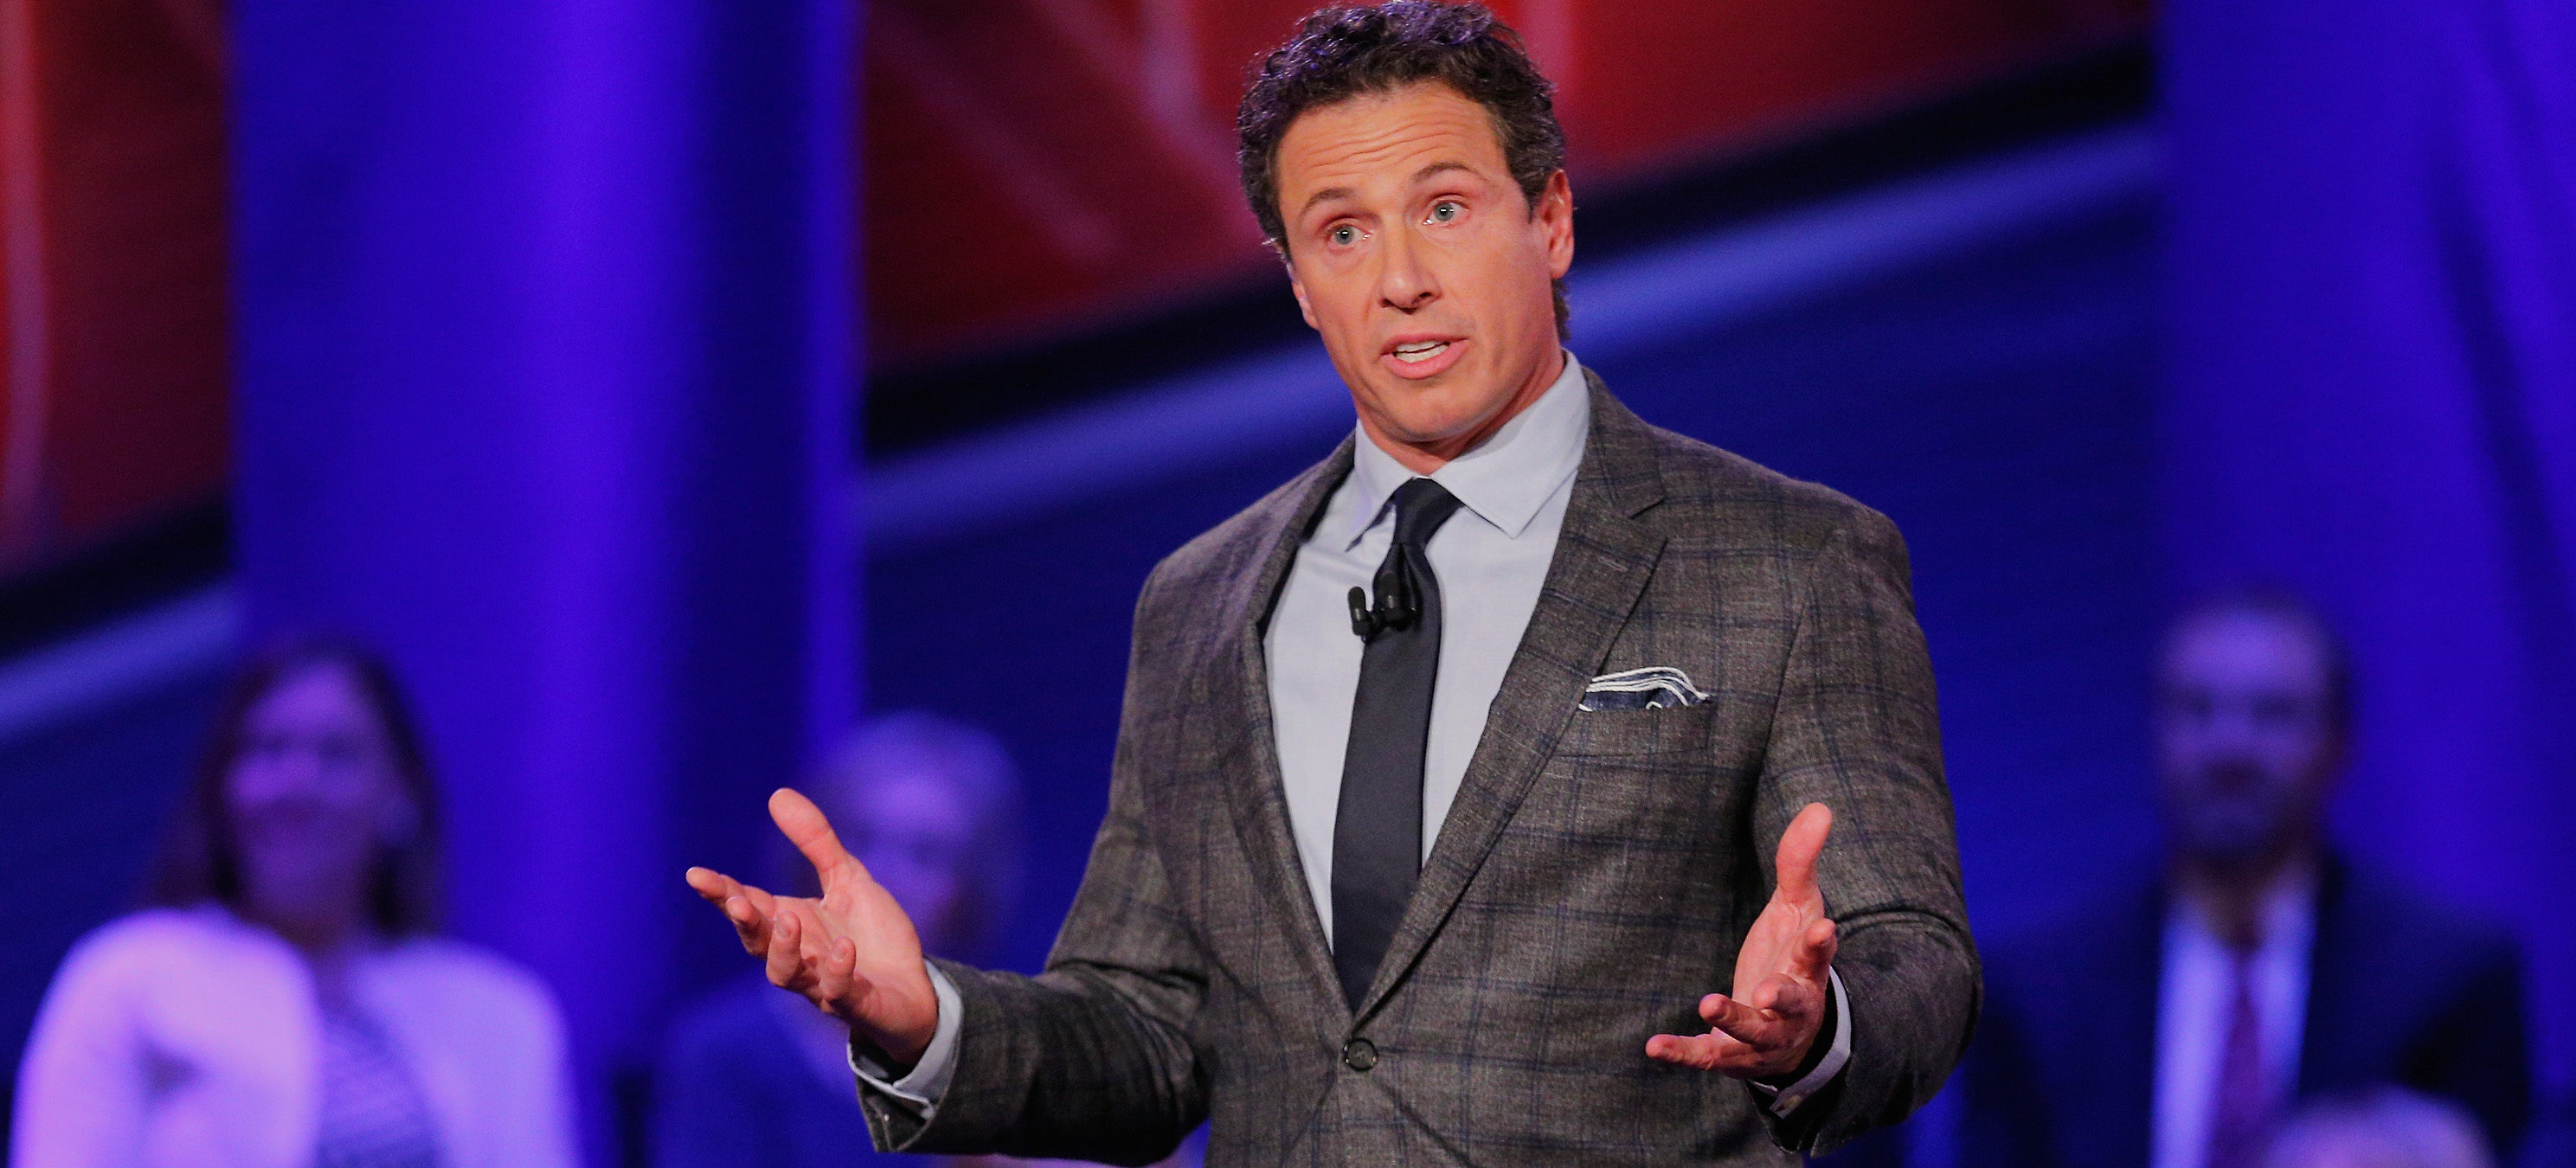 DES MOINES, IA - JANUARY 25: Moderator Chris Cuomo speaks at a town hall forum hosted by CNN at Drake University on January 25, 2016 in Des Moines, Iowa. Democratic presidential candidates Senator Bernie Sanders, Hillary Clinton and Martin O'Malley are scheduled to speak at the event. (Photo by Justin Sullivan/Getty Images)